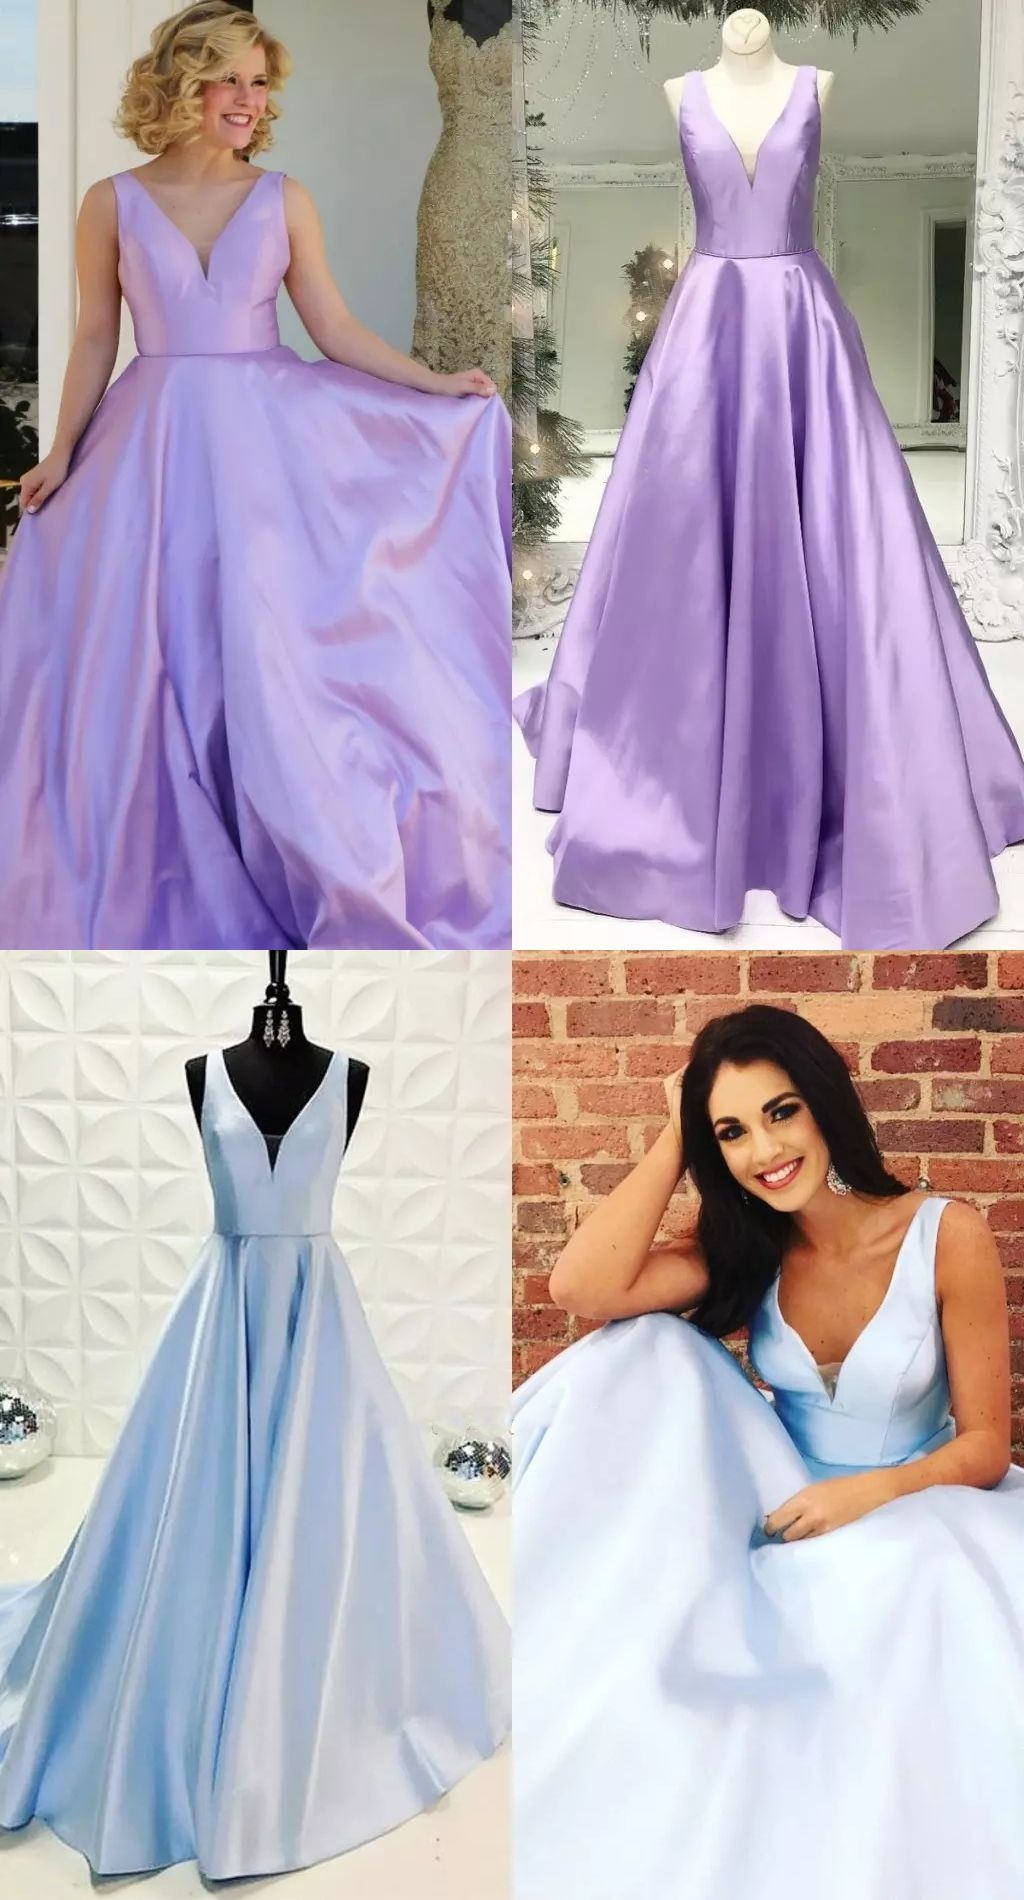 Simple Purple Stian Long Prom Dresses Cheap Light Blue A Line Formal Evening Dress For Tee Petite Prom Dress Light Purple Prom Dress Prom Dresses With Pockets [ 1900 x 1024 Pixel ]